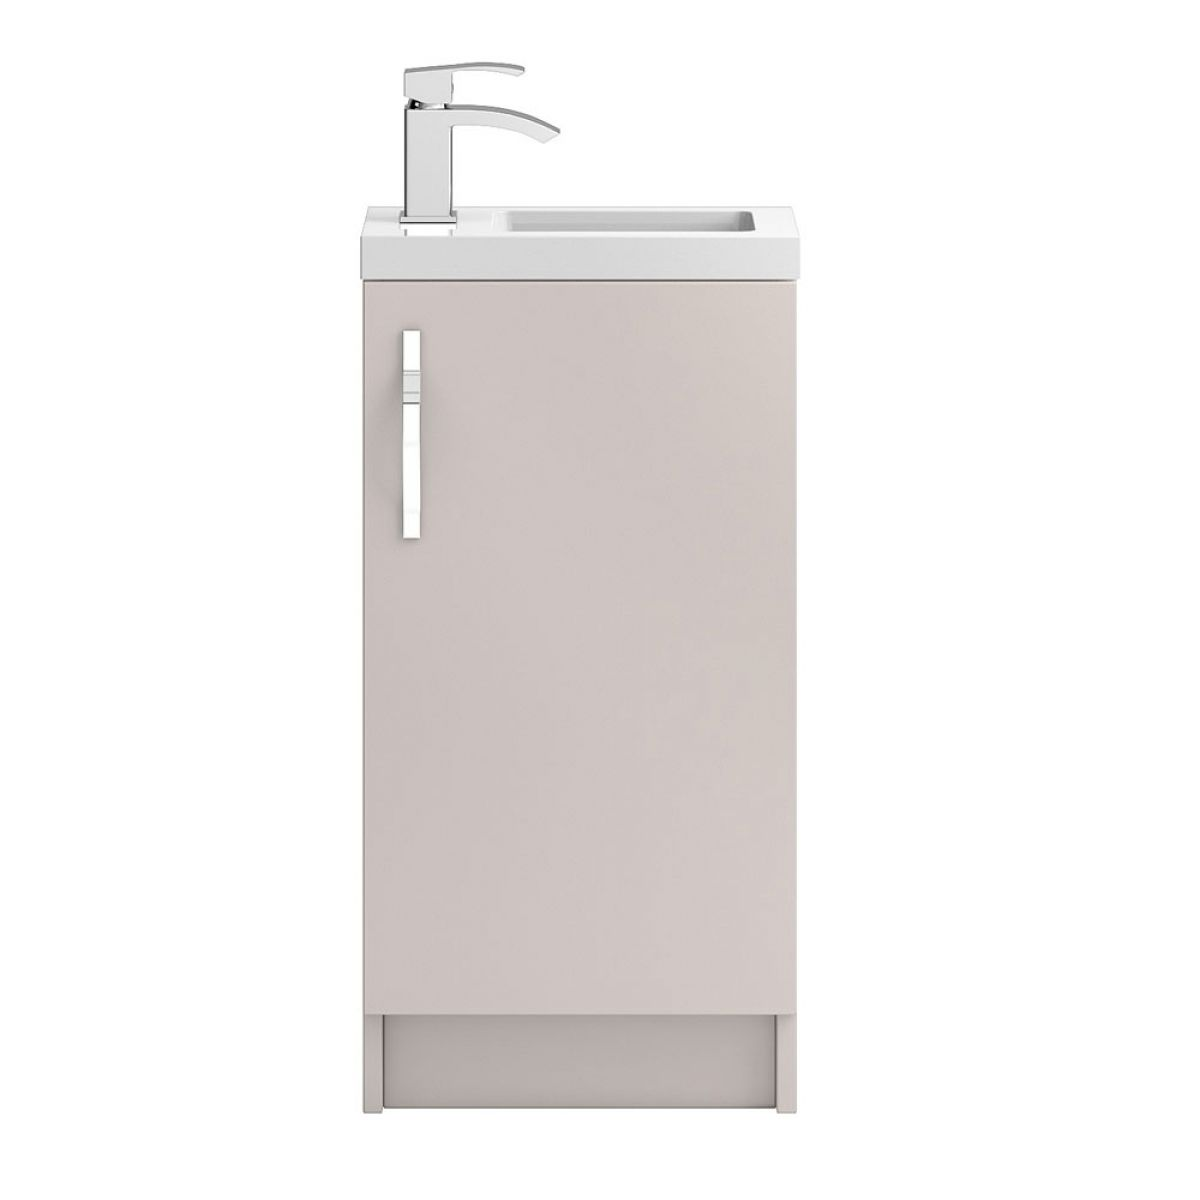 Hudson Reed Apollo Compact Gloss Cashmere Floor Standing Vanity Unit 400mm